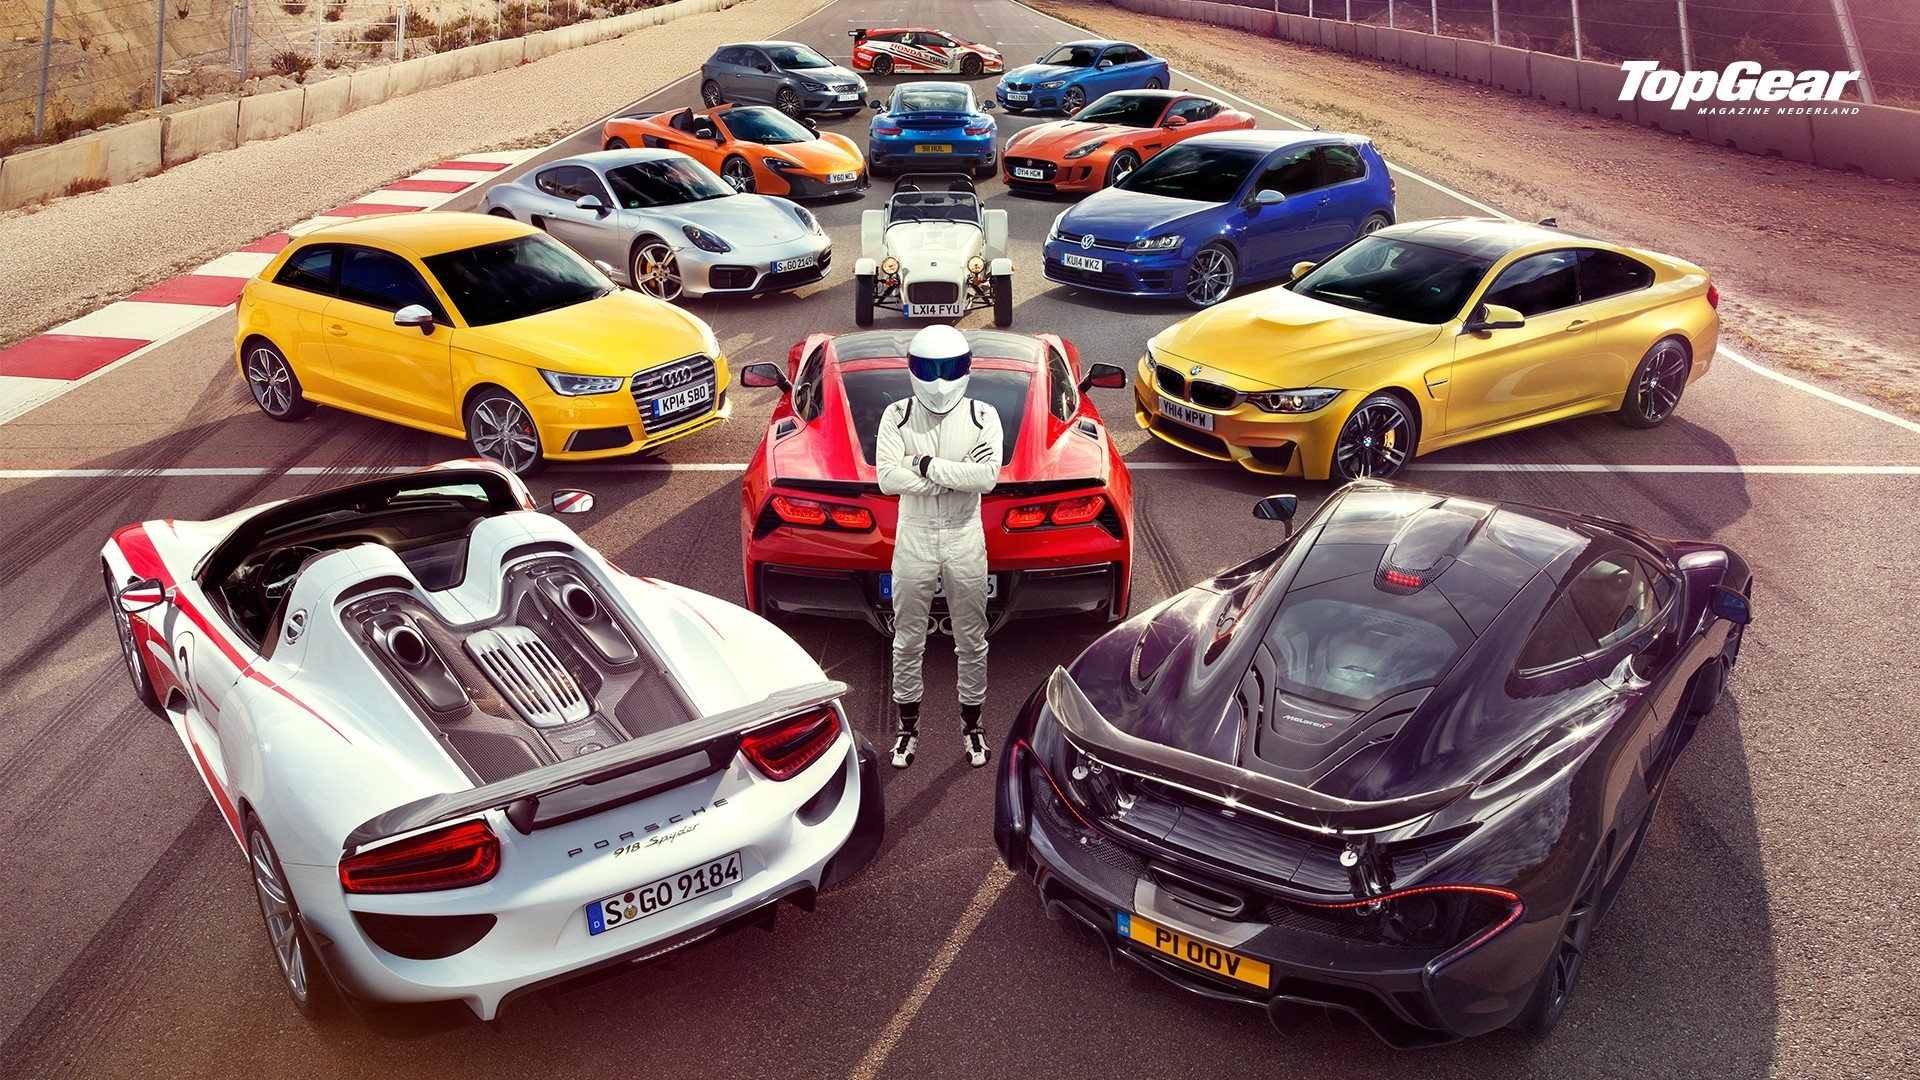 Car Wallpaper Hd For Iphone Top Gear Wallpapers Pictures Images